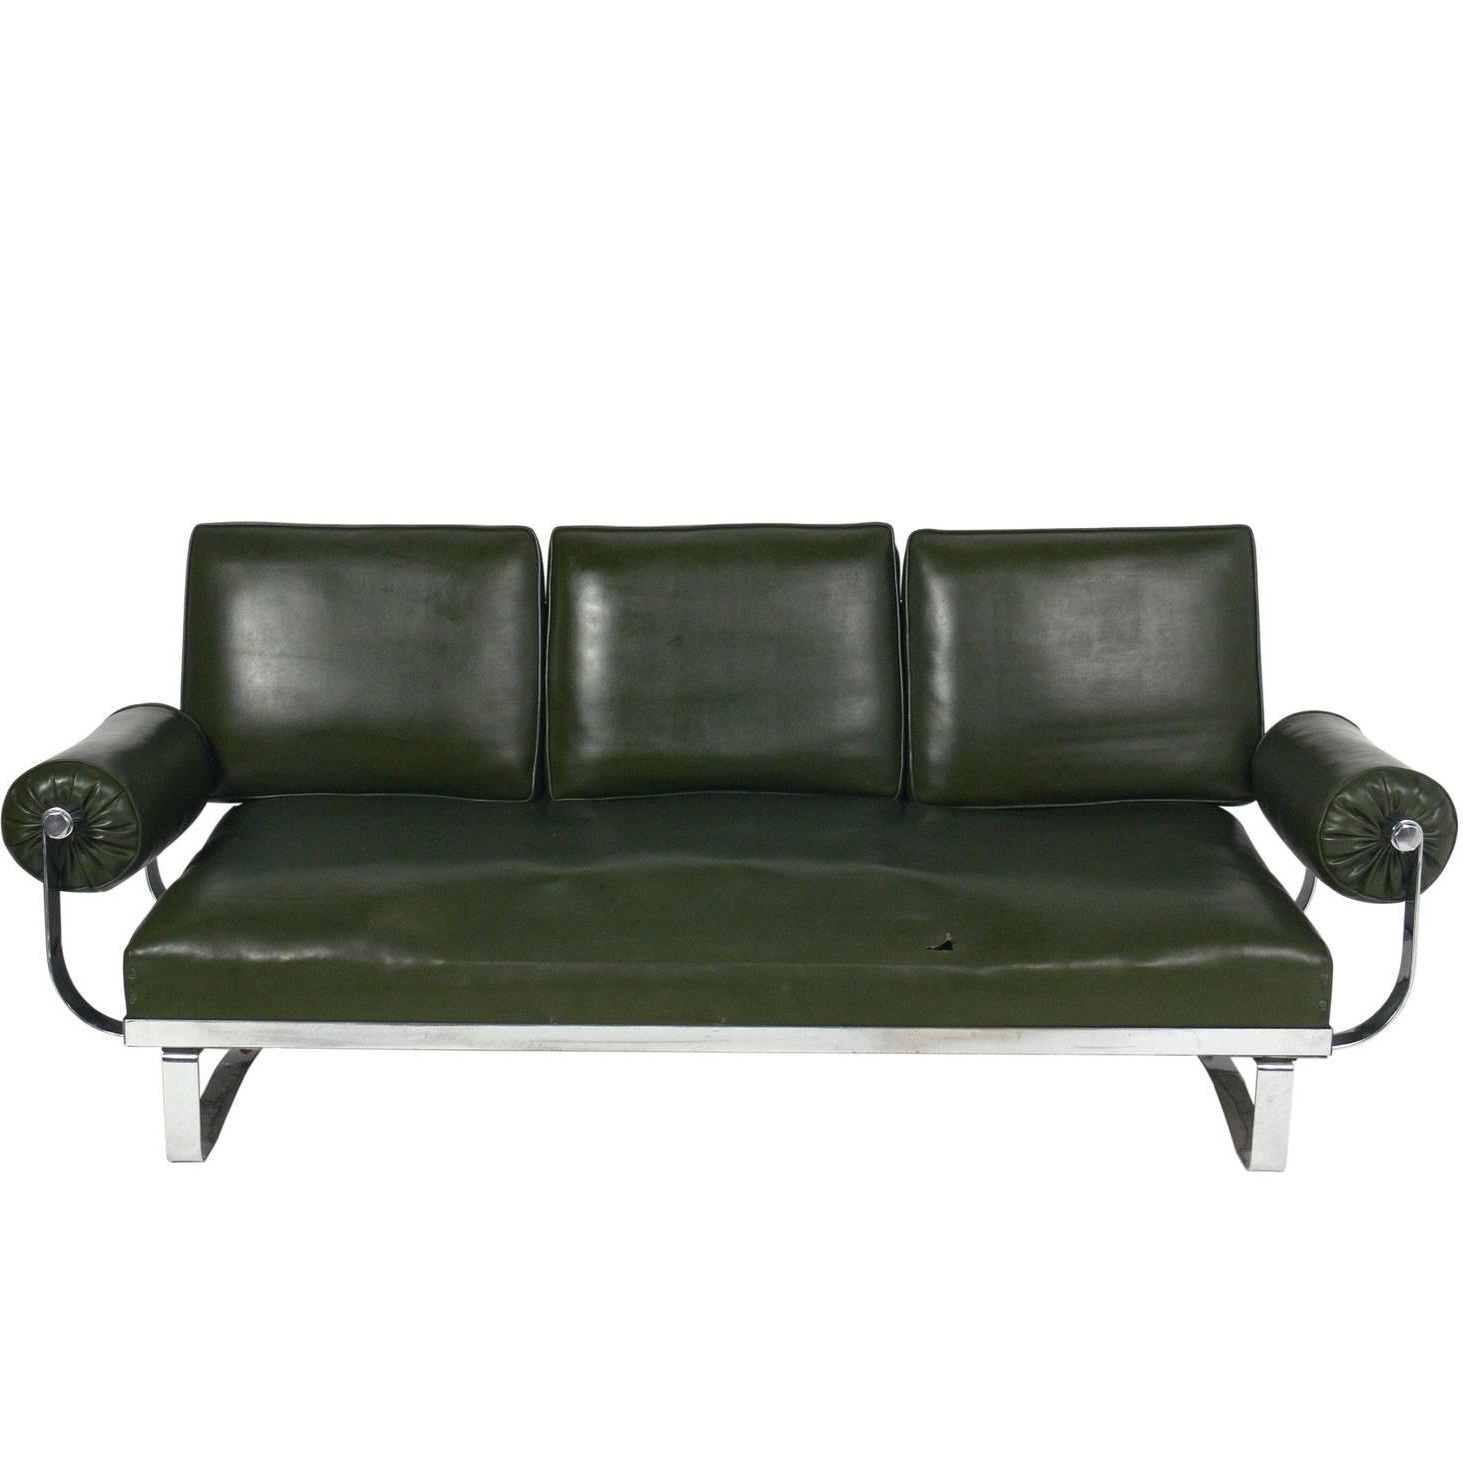 Trendy Fancy Art Deco Sofa 43 With Additional Modern Sofa Ideas With Art Intended For Art Deco Sofas (View 3 of 15)